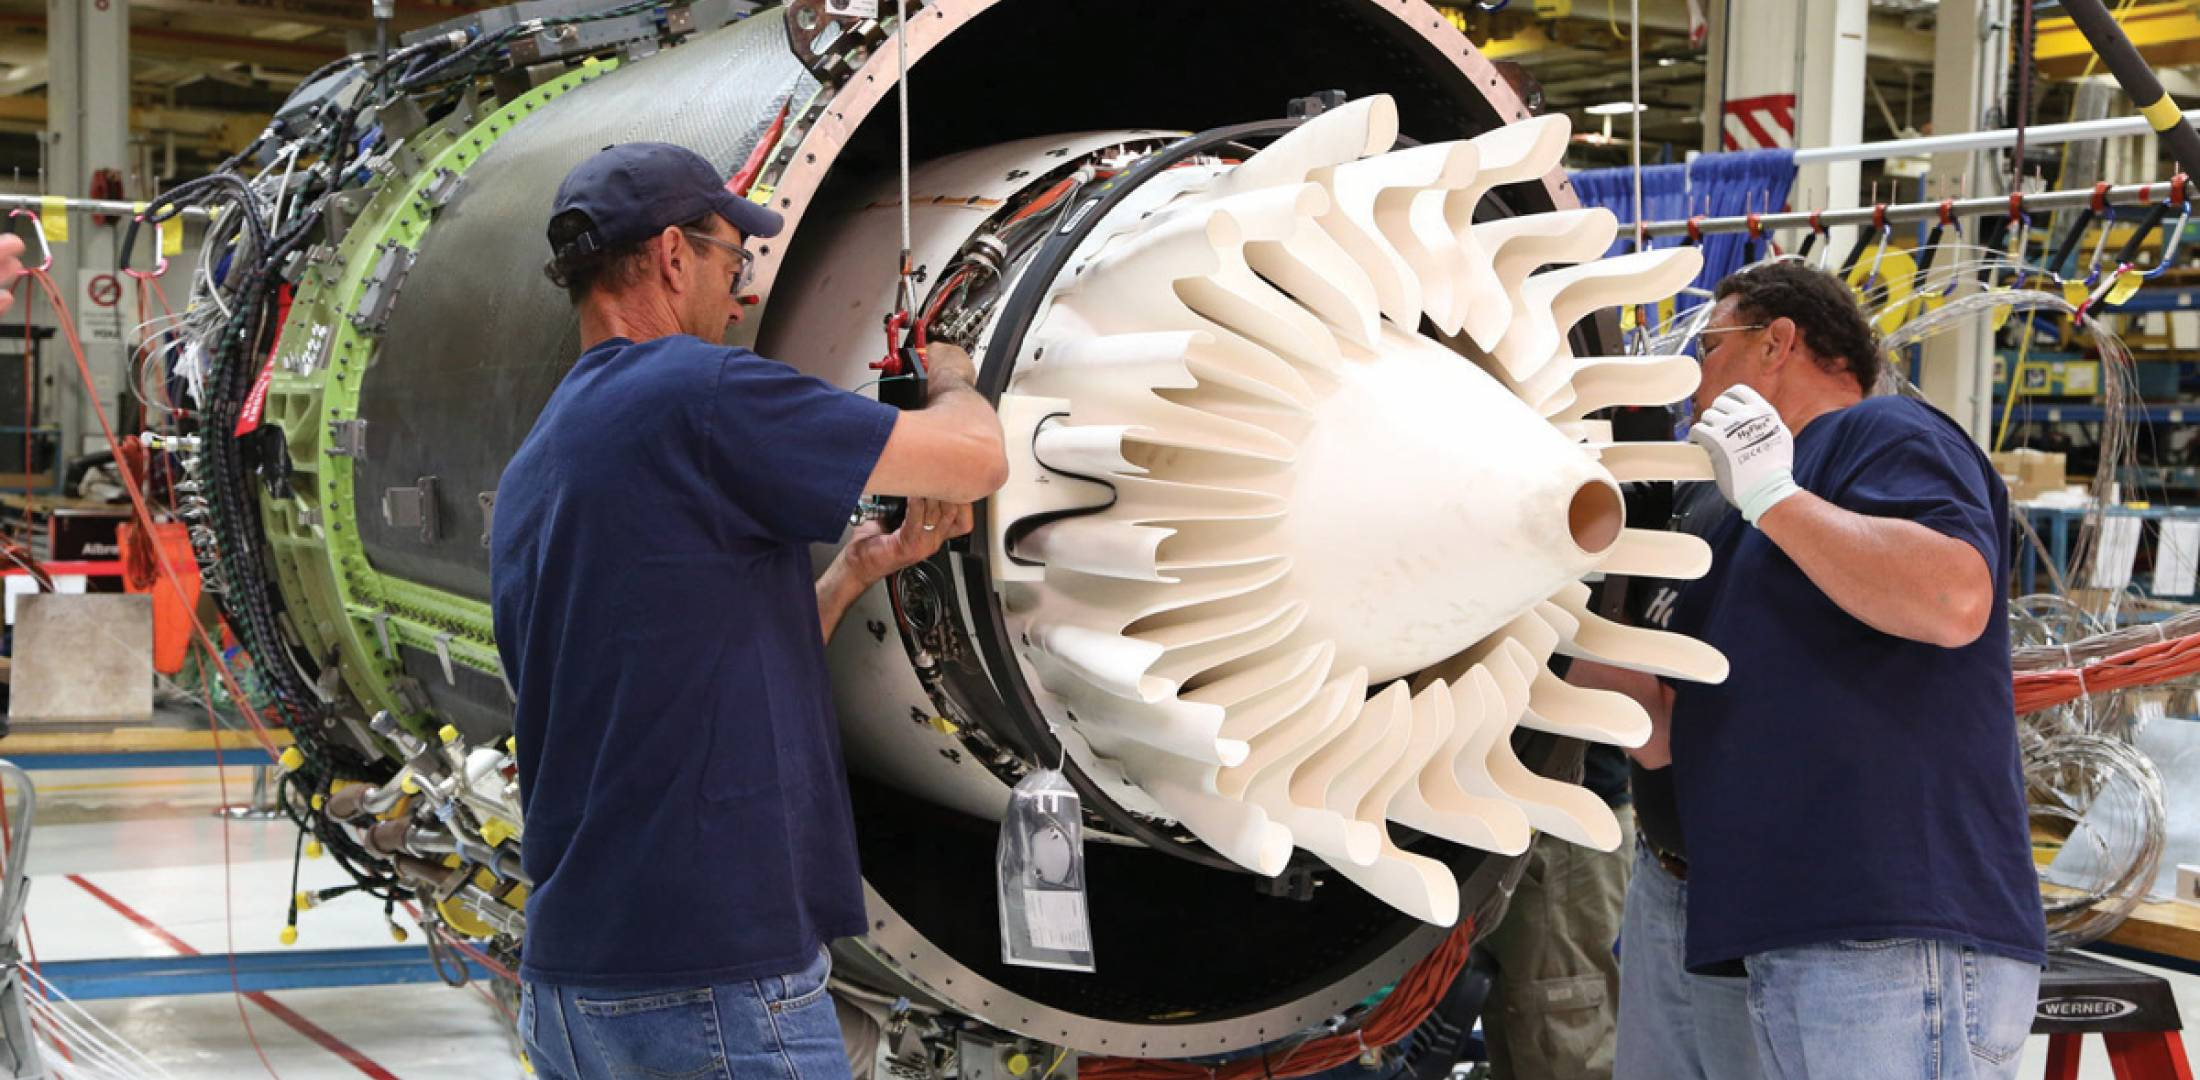 GE's Passport engine marks the commercial debut of ceramic-matrix composite (CMC) material usage for harsh environment parts such as the mixer and center body assemblies. In total it uses 15 CMC parts for a weight savings of more than 40 pounds per engine.